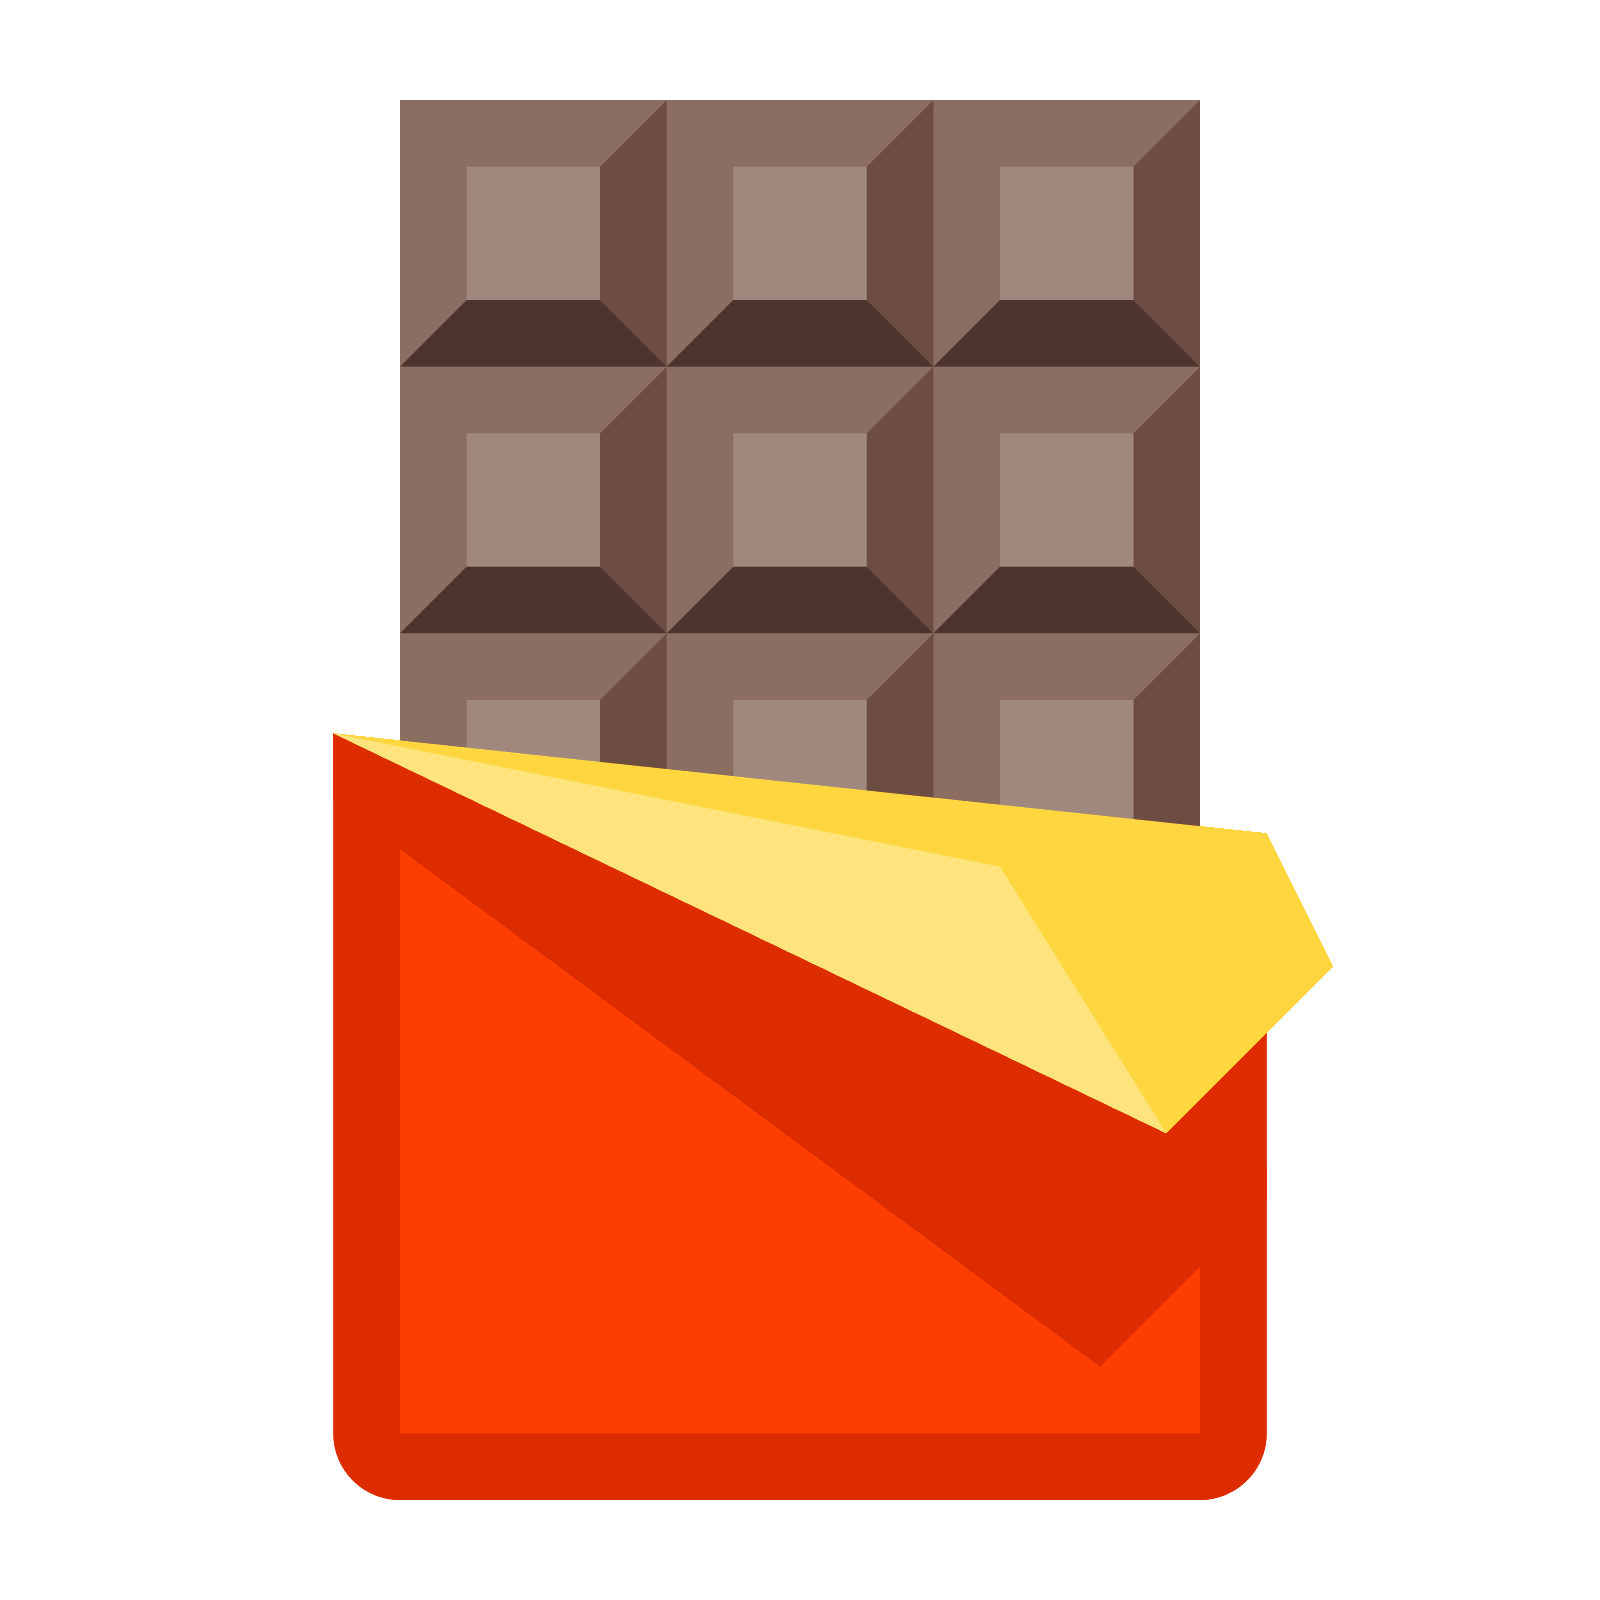 chocolate vector png